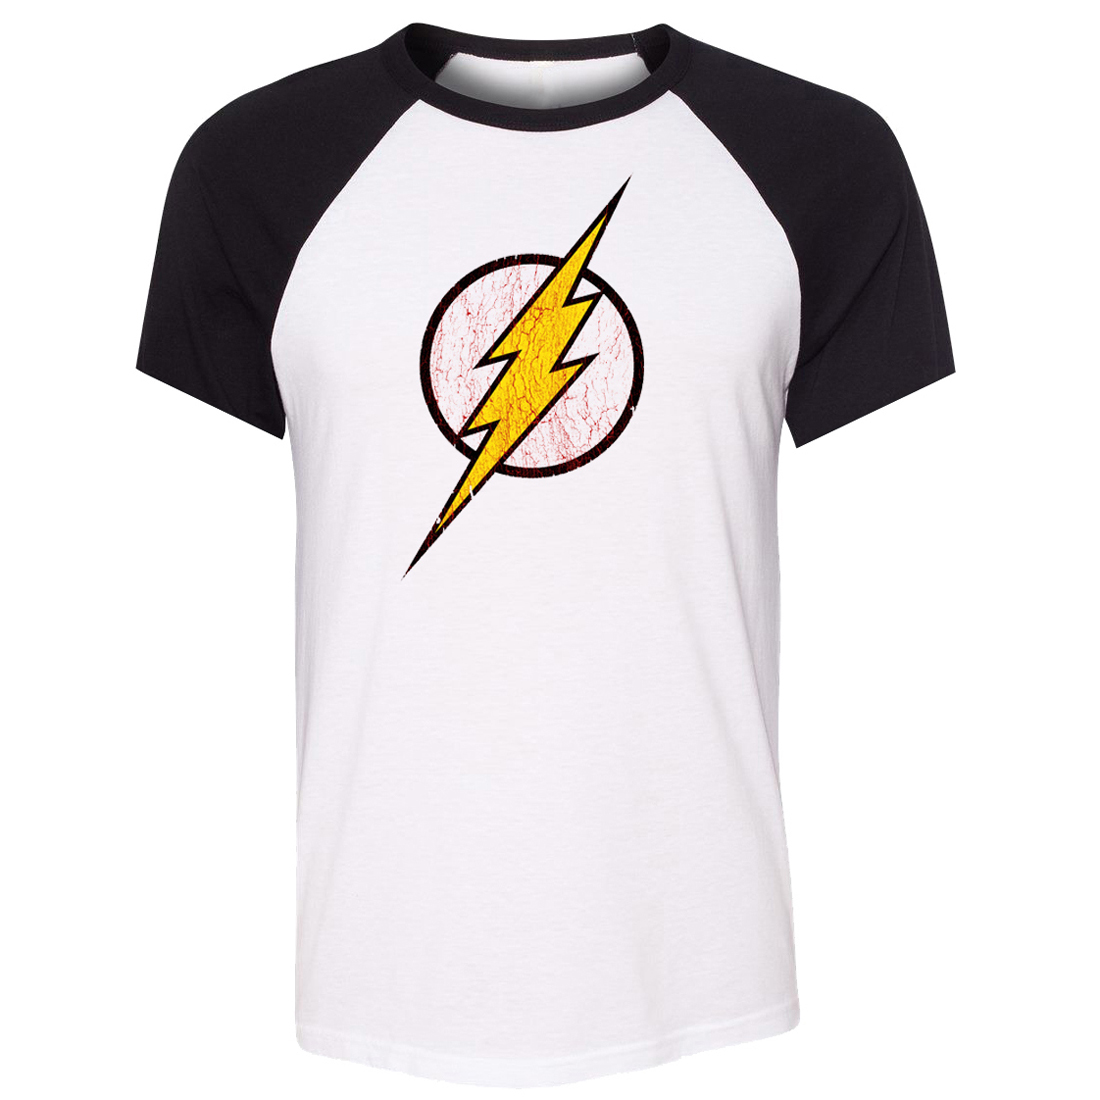 iDzn Unisex Summer T-shirt DC Comic The Flash Barry Allen Super Hero Art pattern Raglan Short Sleeve Men T shirt Casual Tee Tops